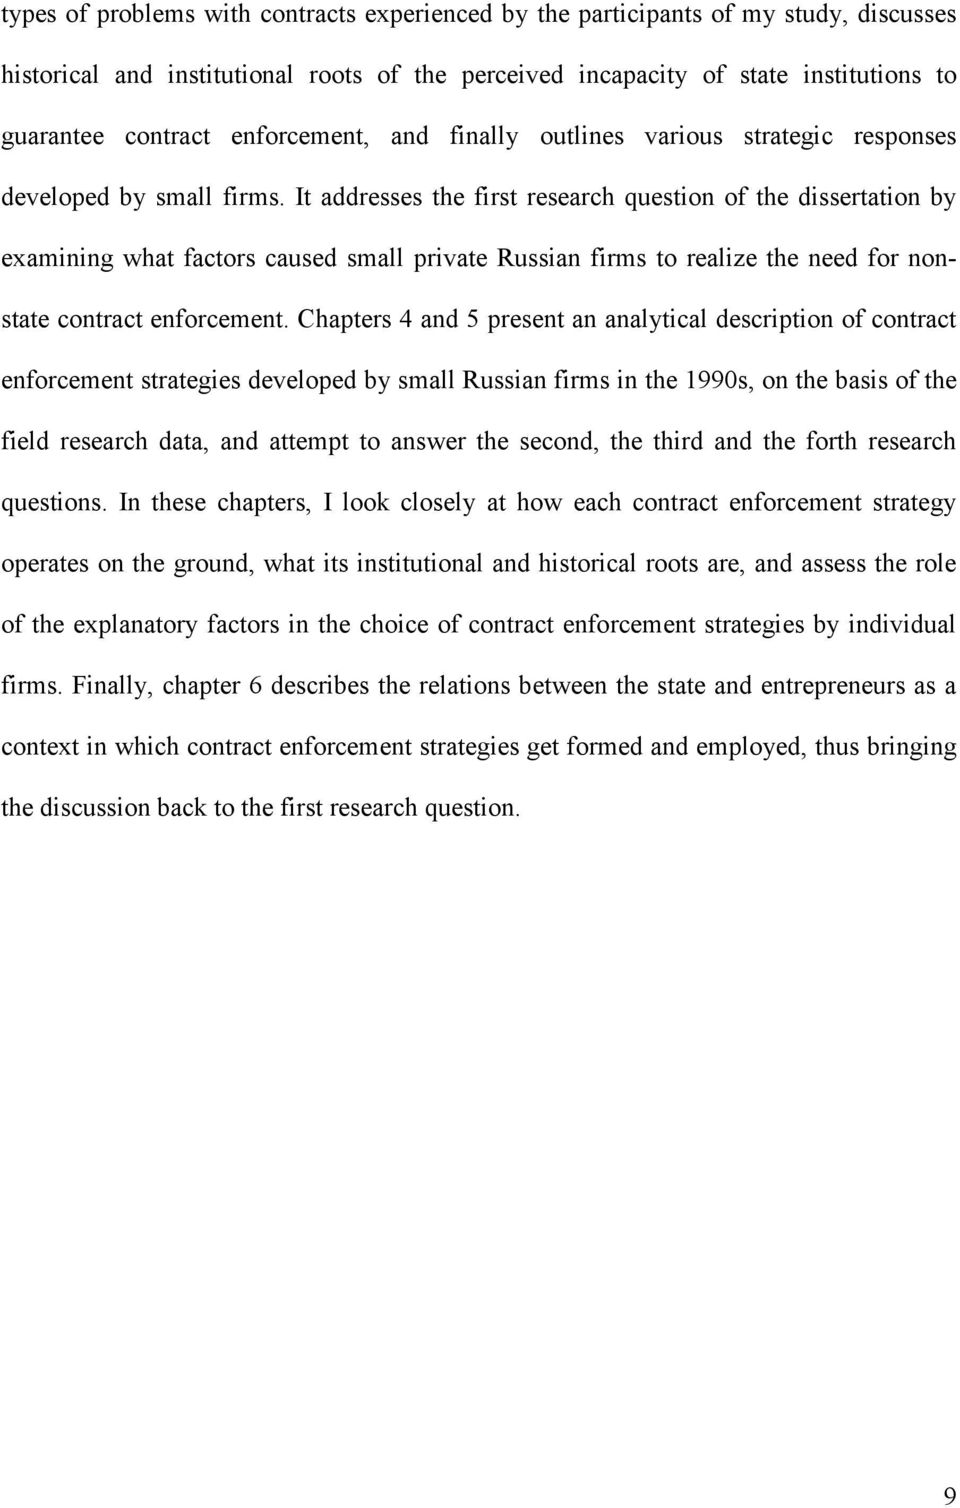 It addresses the first research question of the dissertation by examining what factors caused small private Russian firms to realize the need for nonstate contract enforcement.